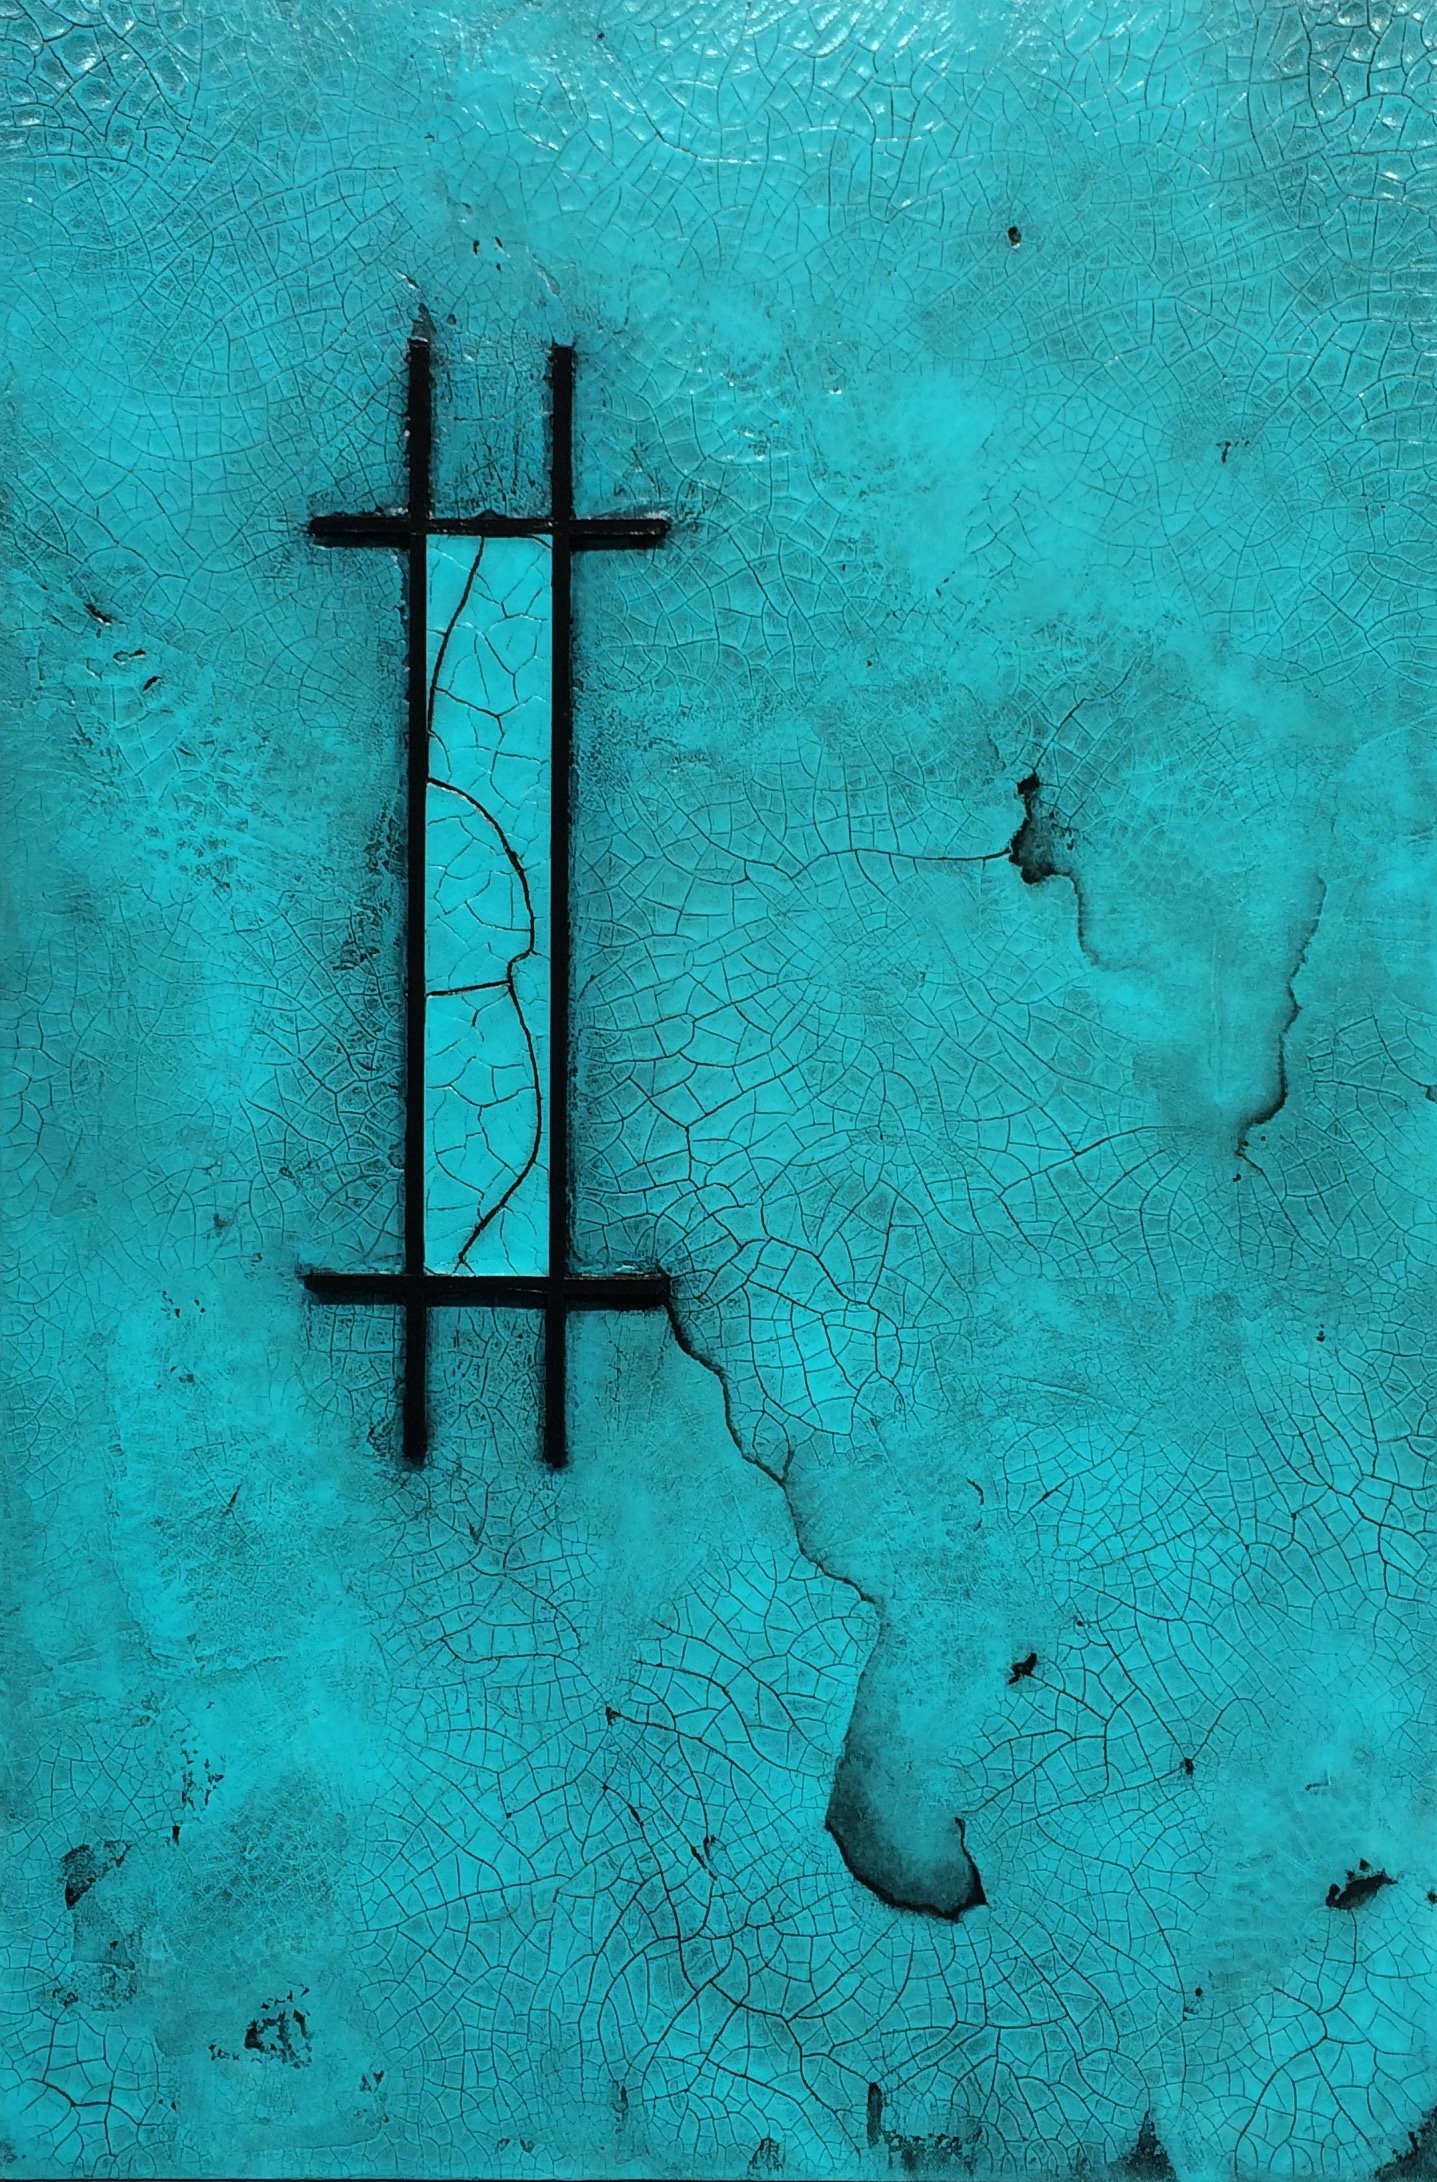 Raku Teal II - Mixed Media - 24x36